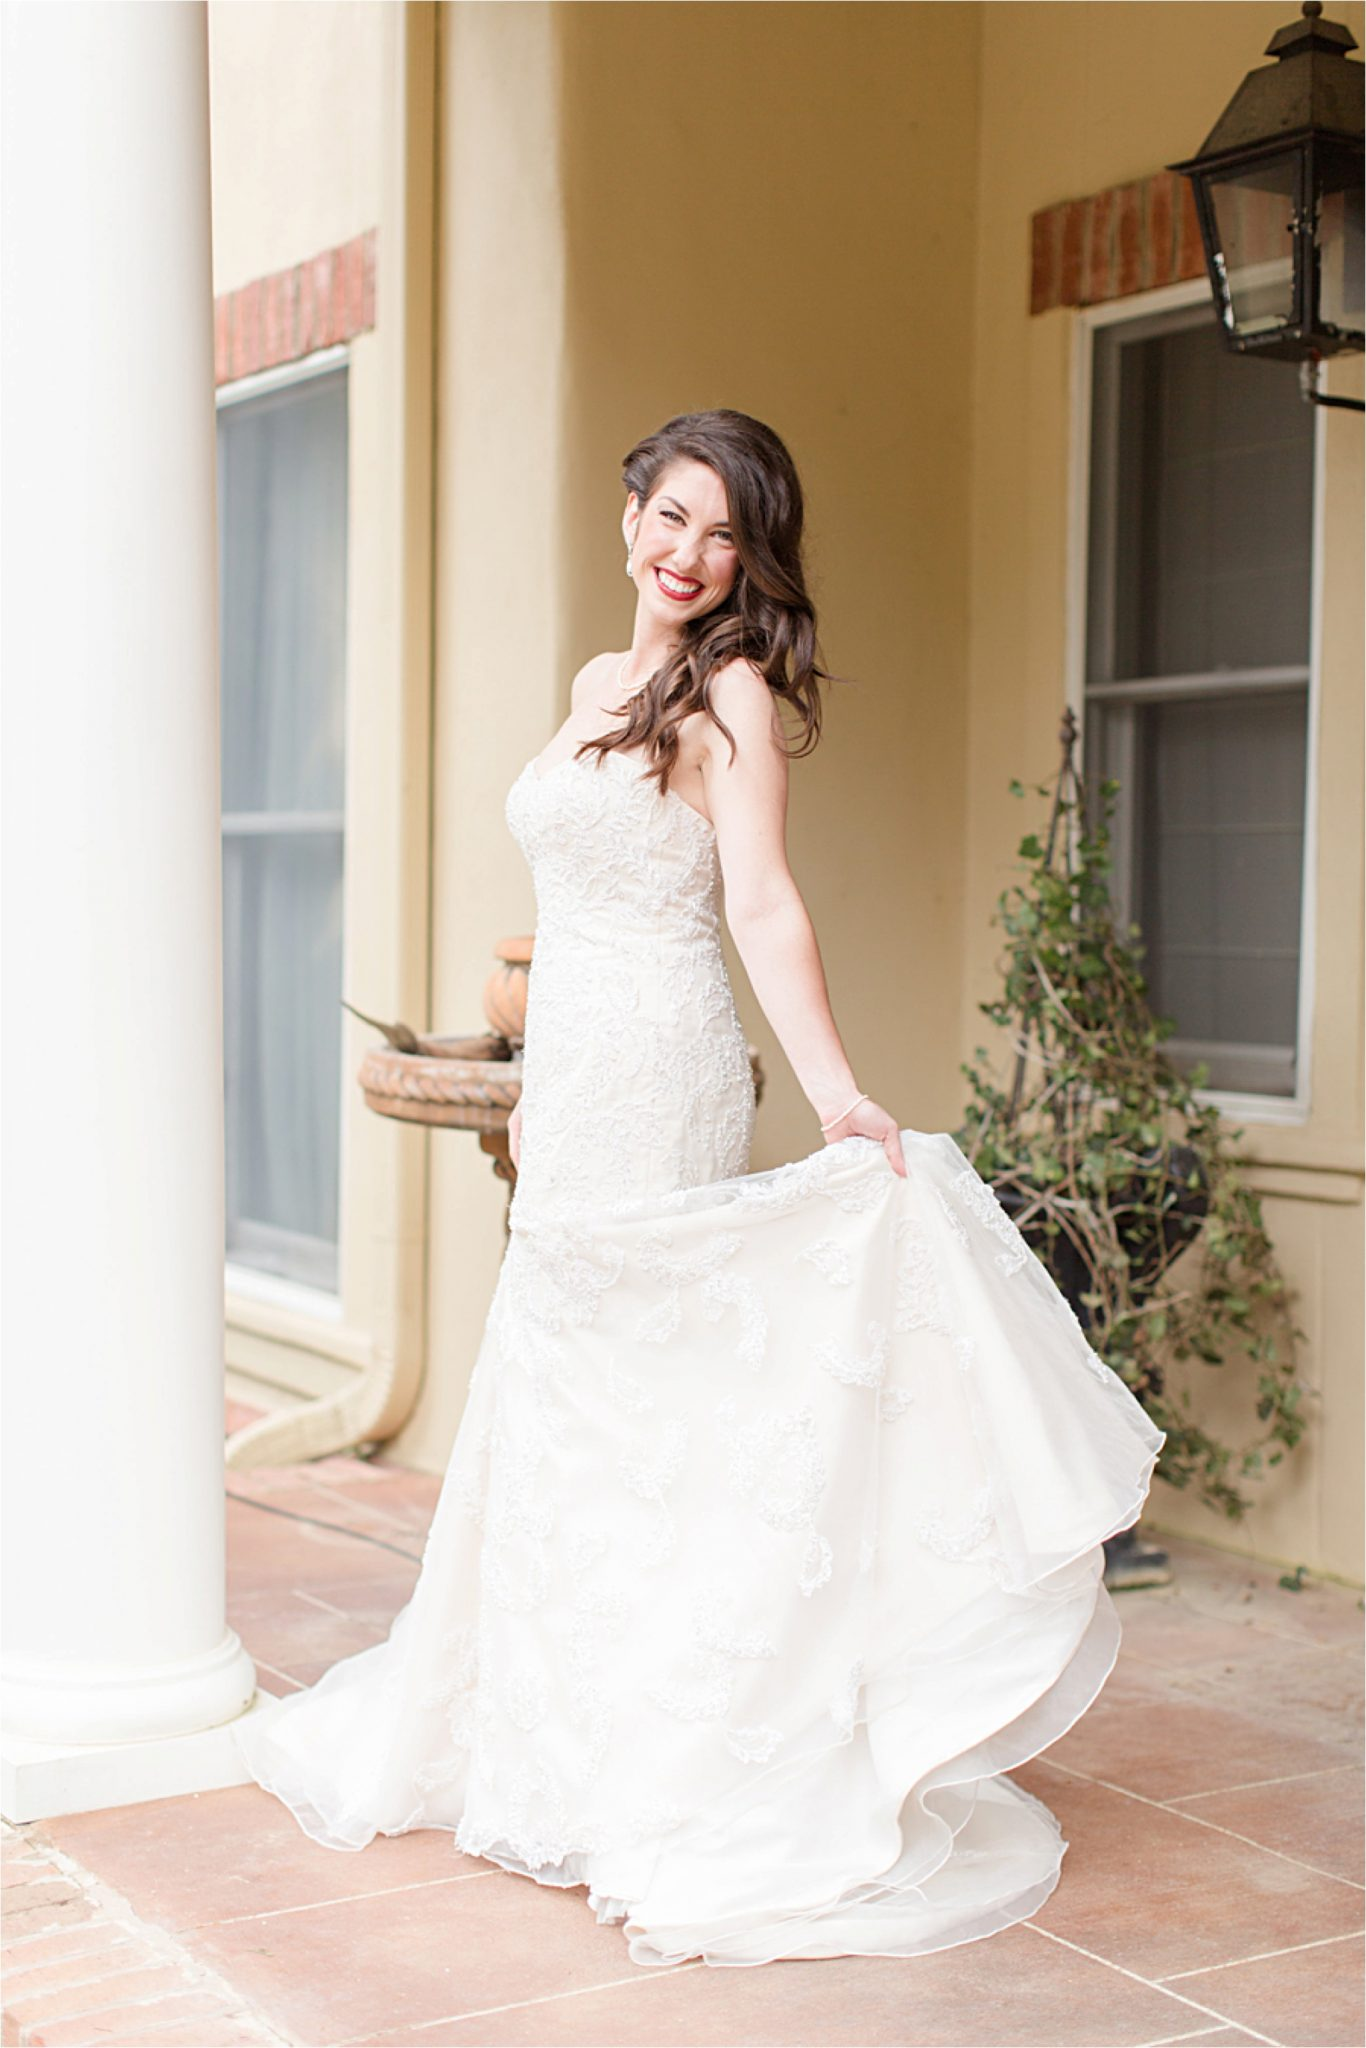 Bella sera gardens-mermaid wedding stress-flare skirt-loose curls-wedding hair